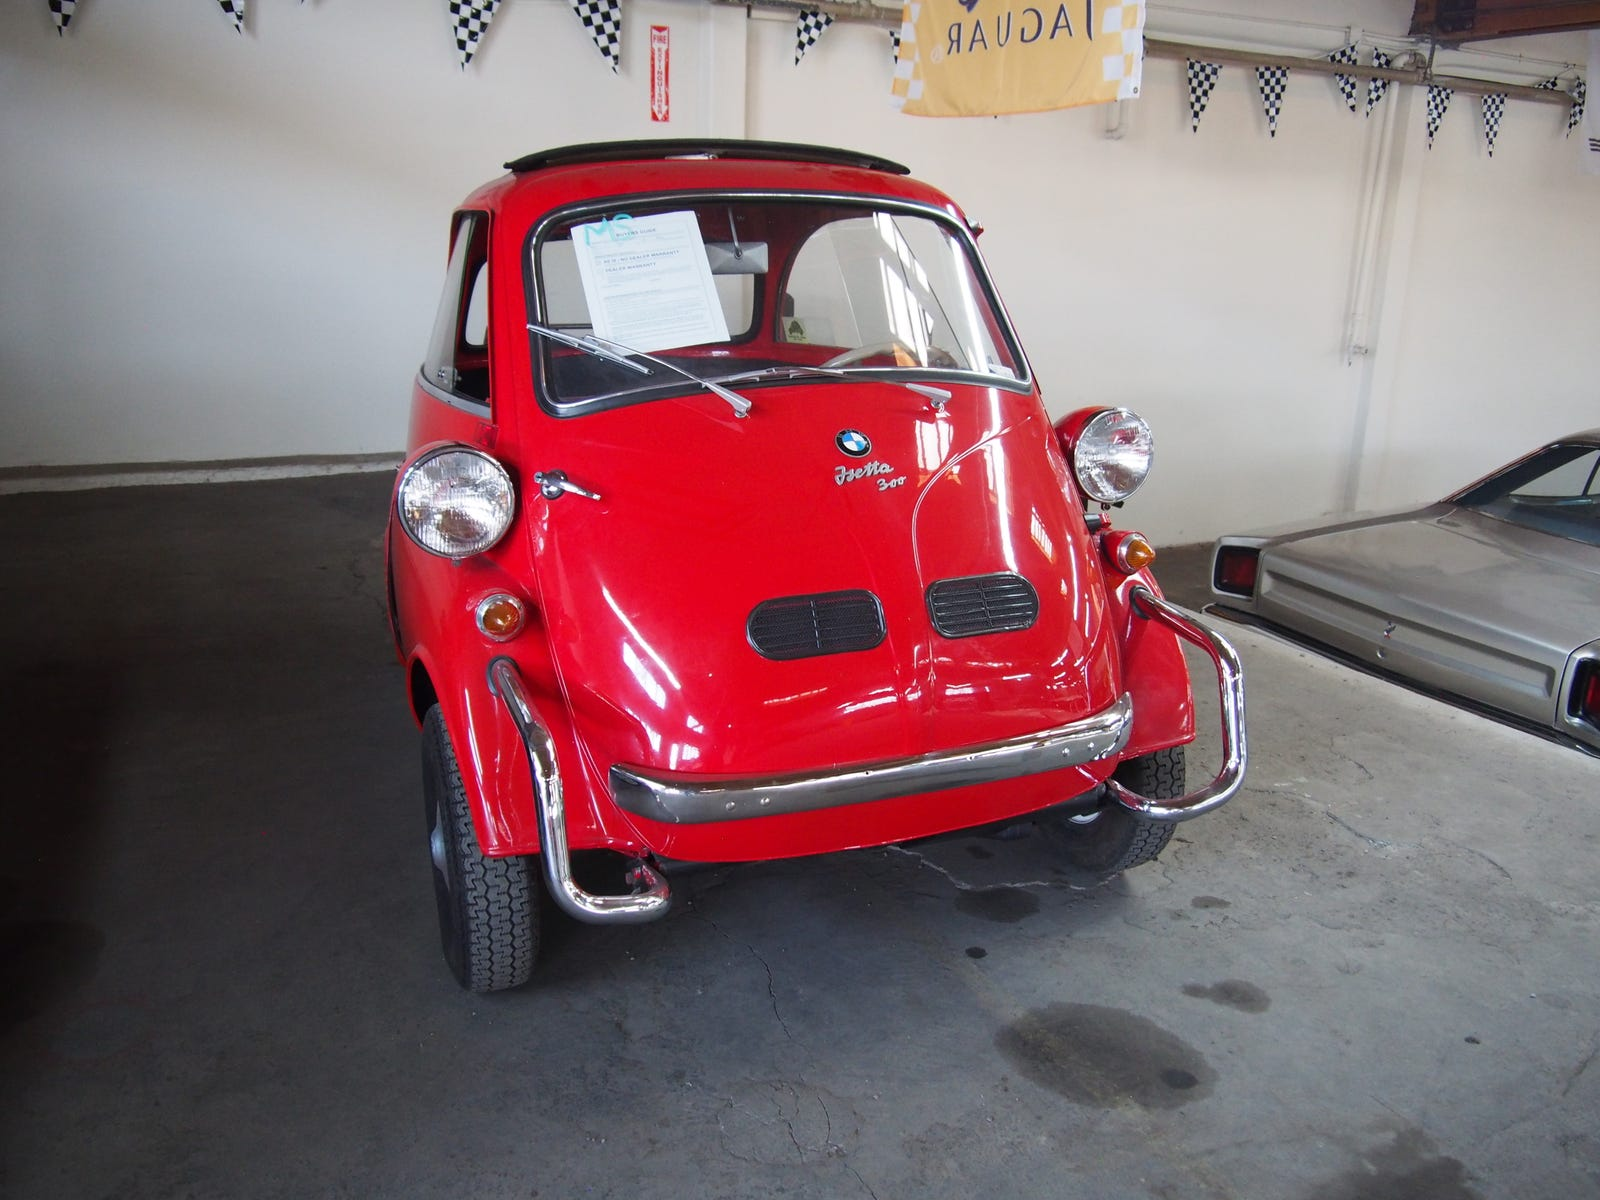 Hey, an Isetta! This was one of the most nicely sorted cars there.